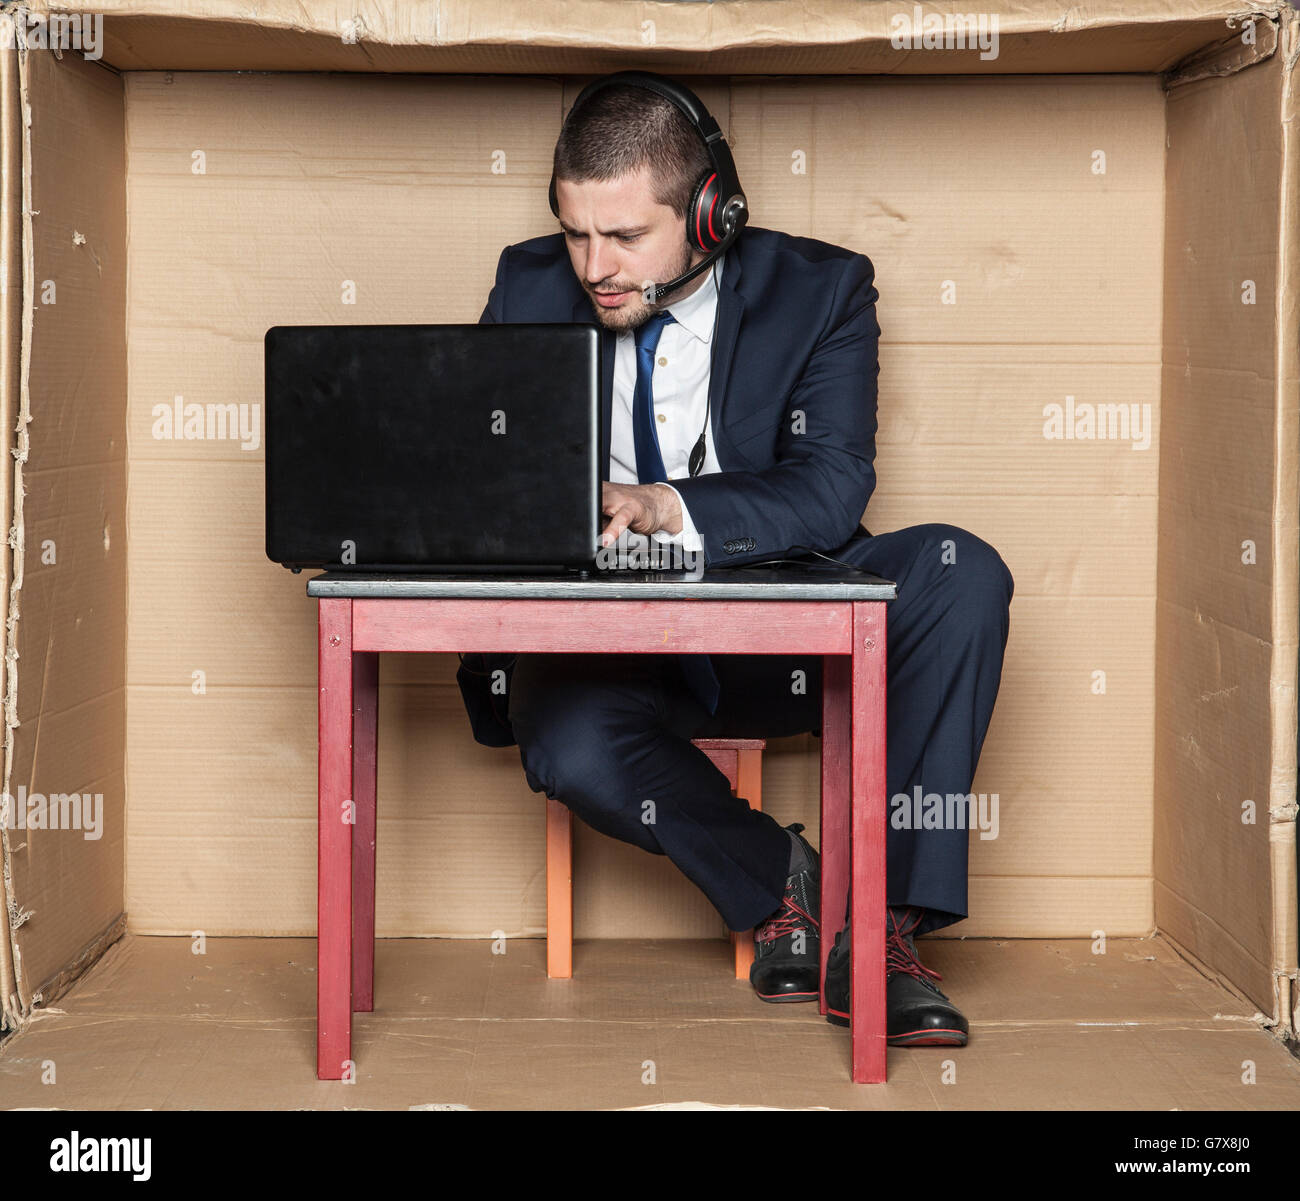 concentration at work is essential Stock Photo